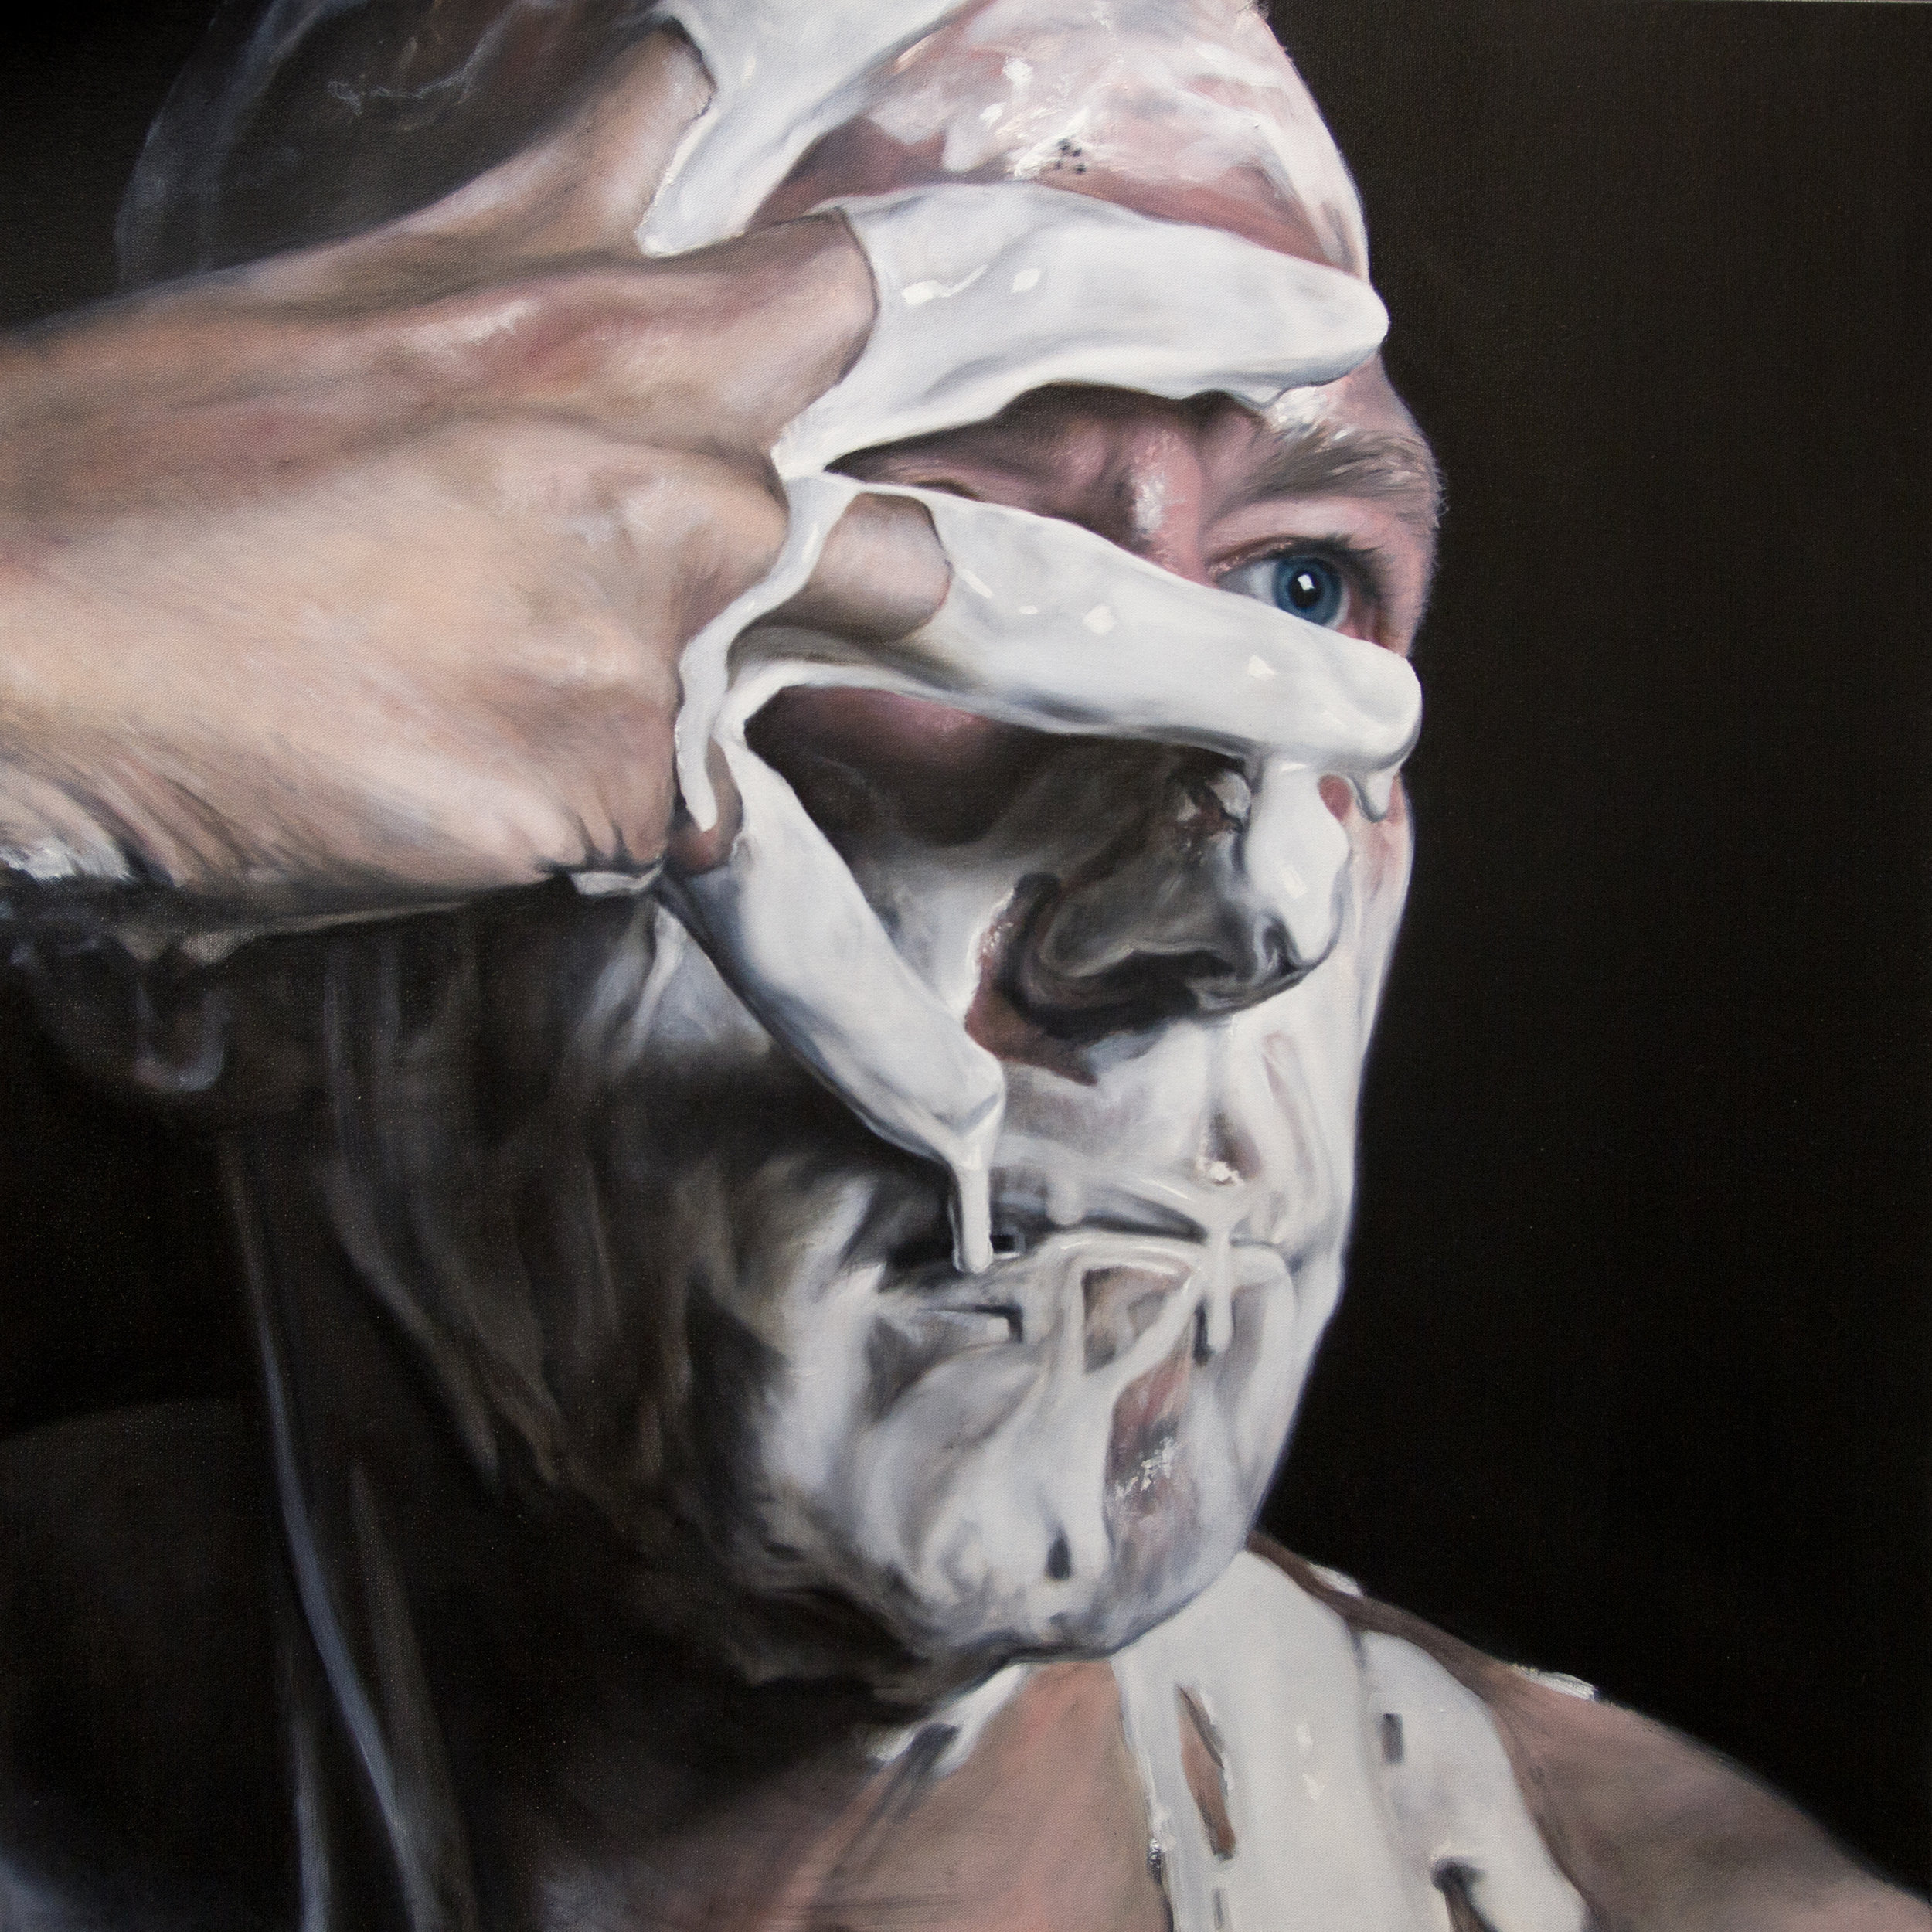 White Paint Play Commission. 90x90cm, Oil on Canvas (SOLD)